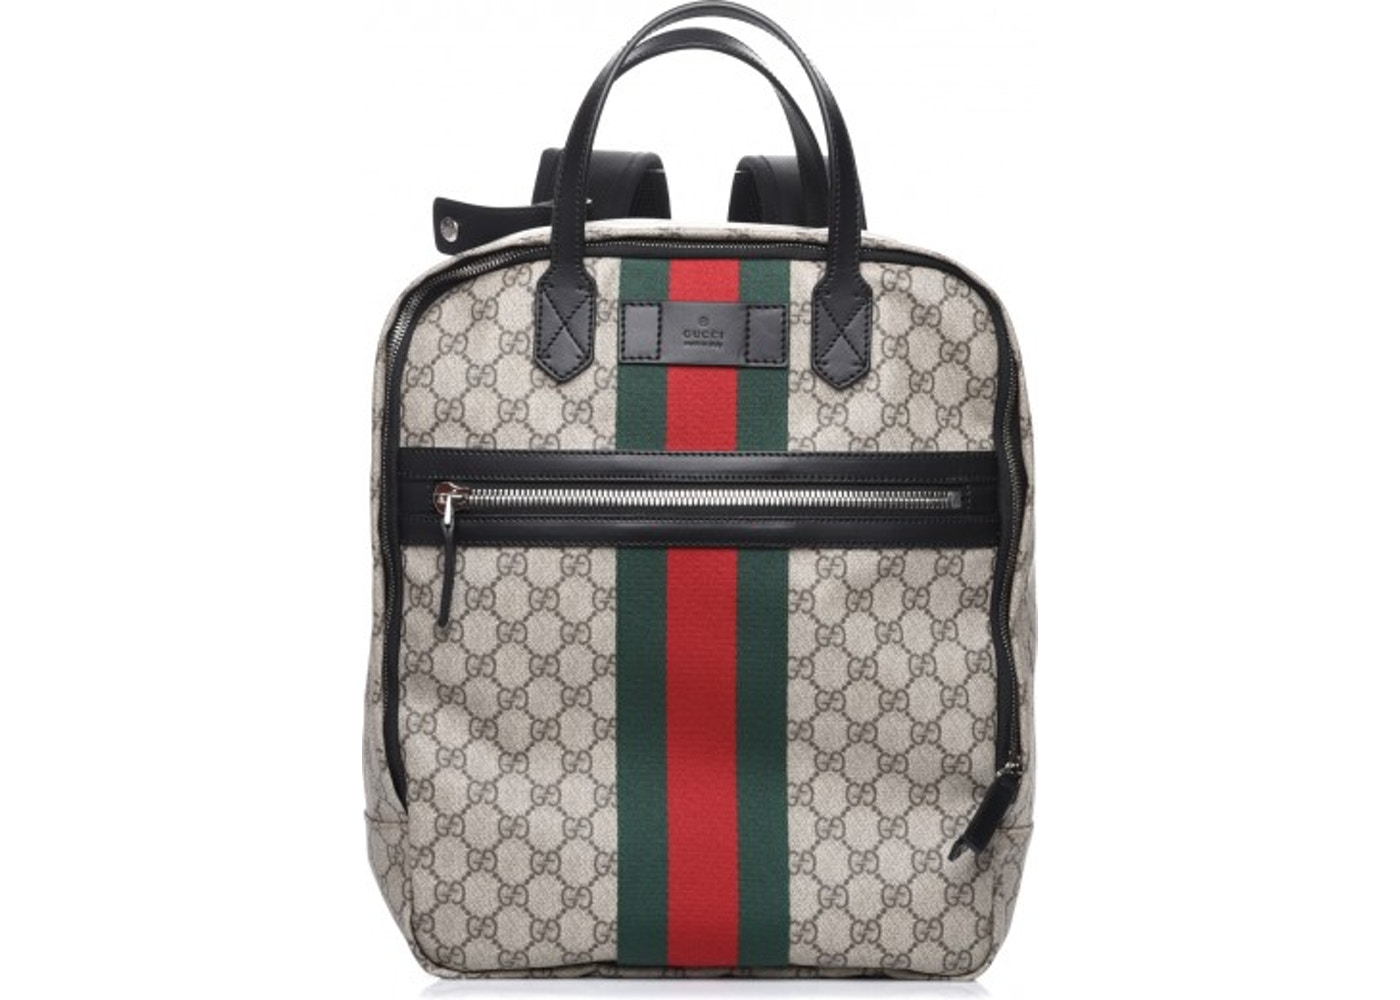 Buy   Sell Gucci Handbags - New Lowest Asks e0399ea684b27